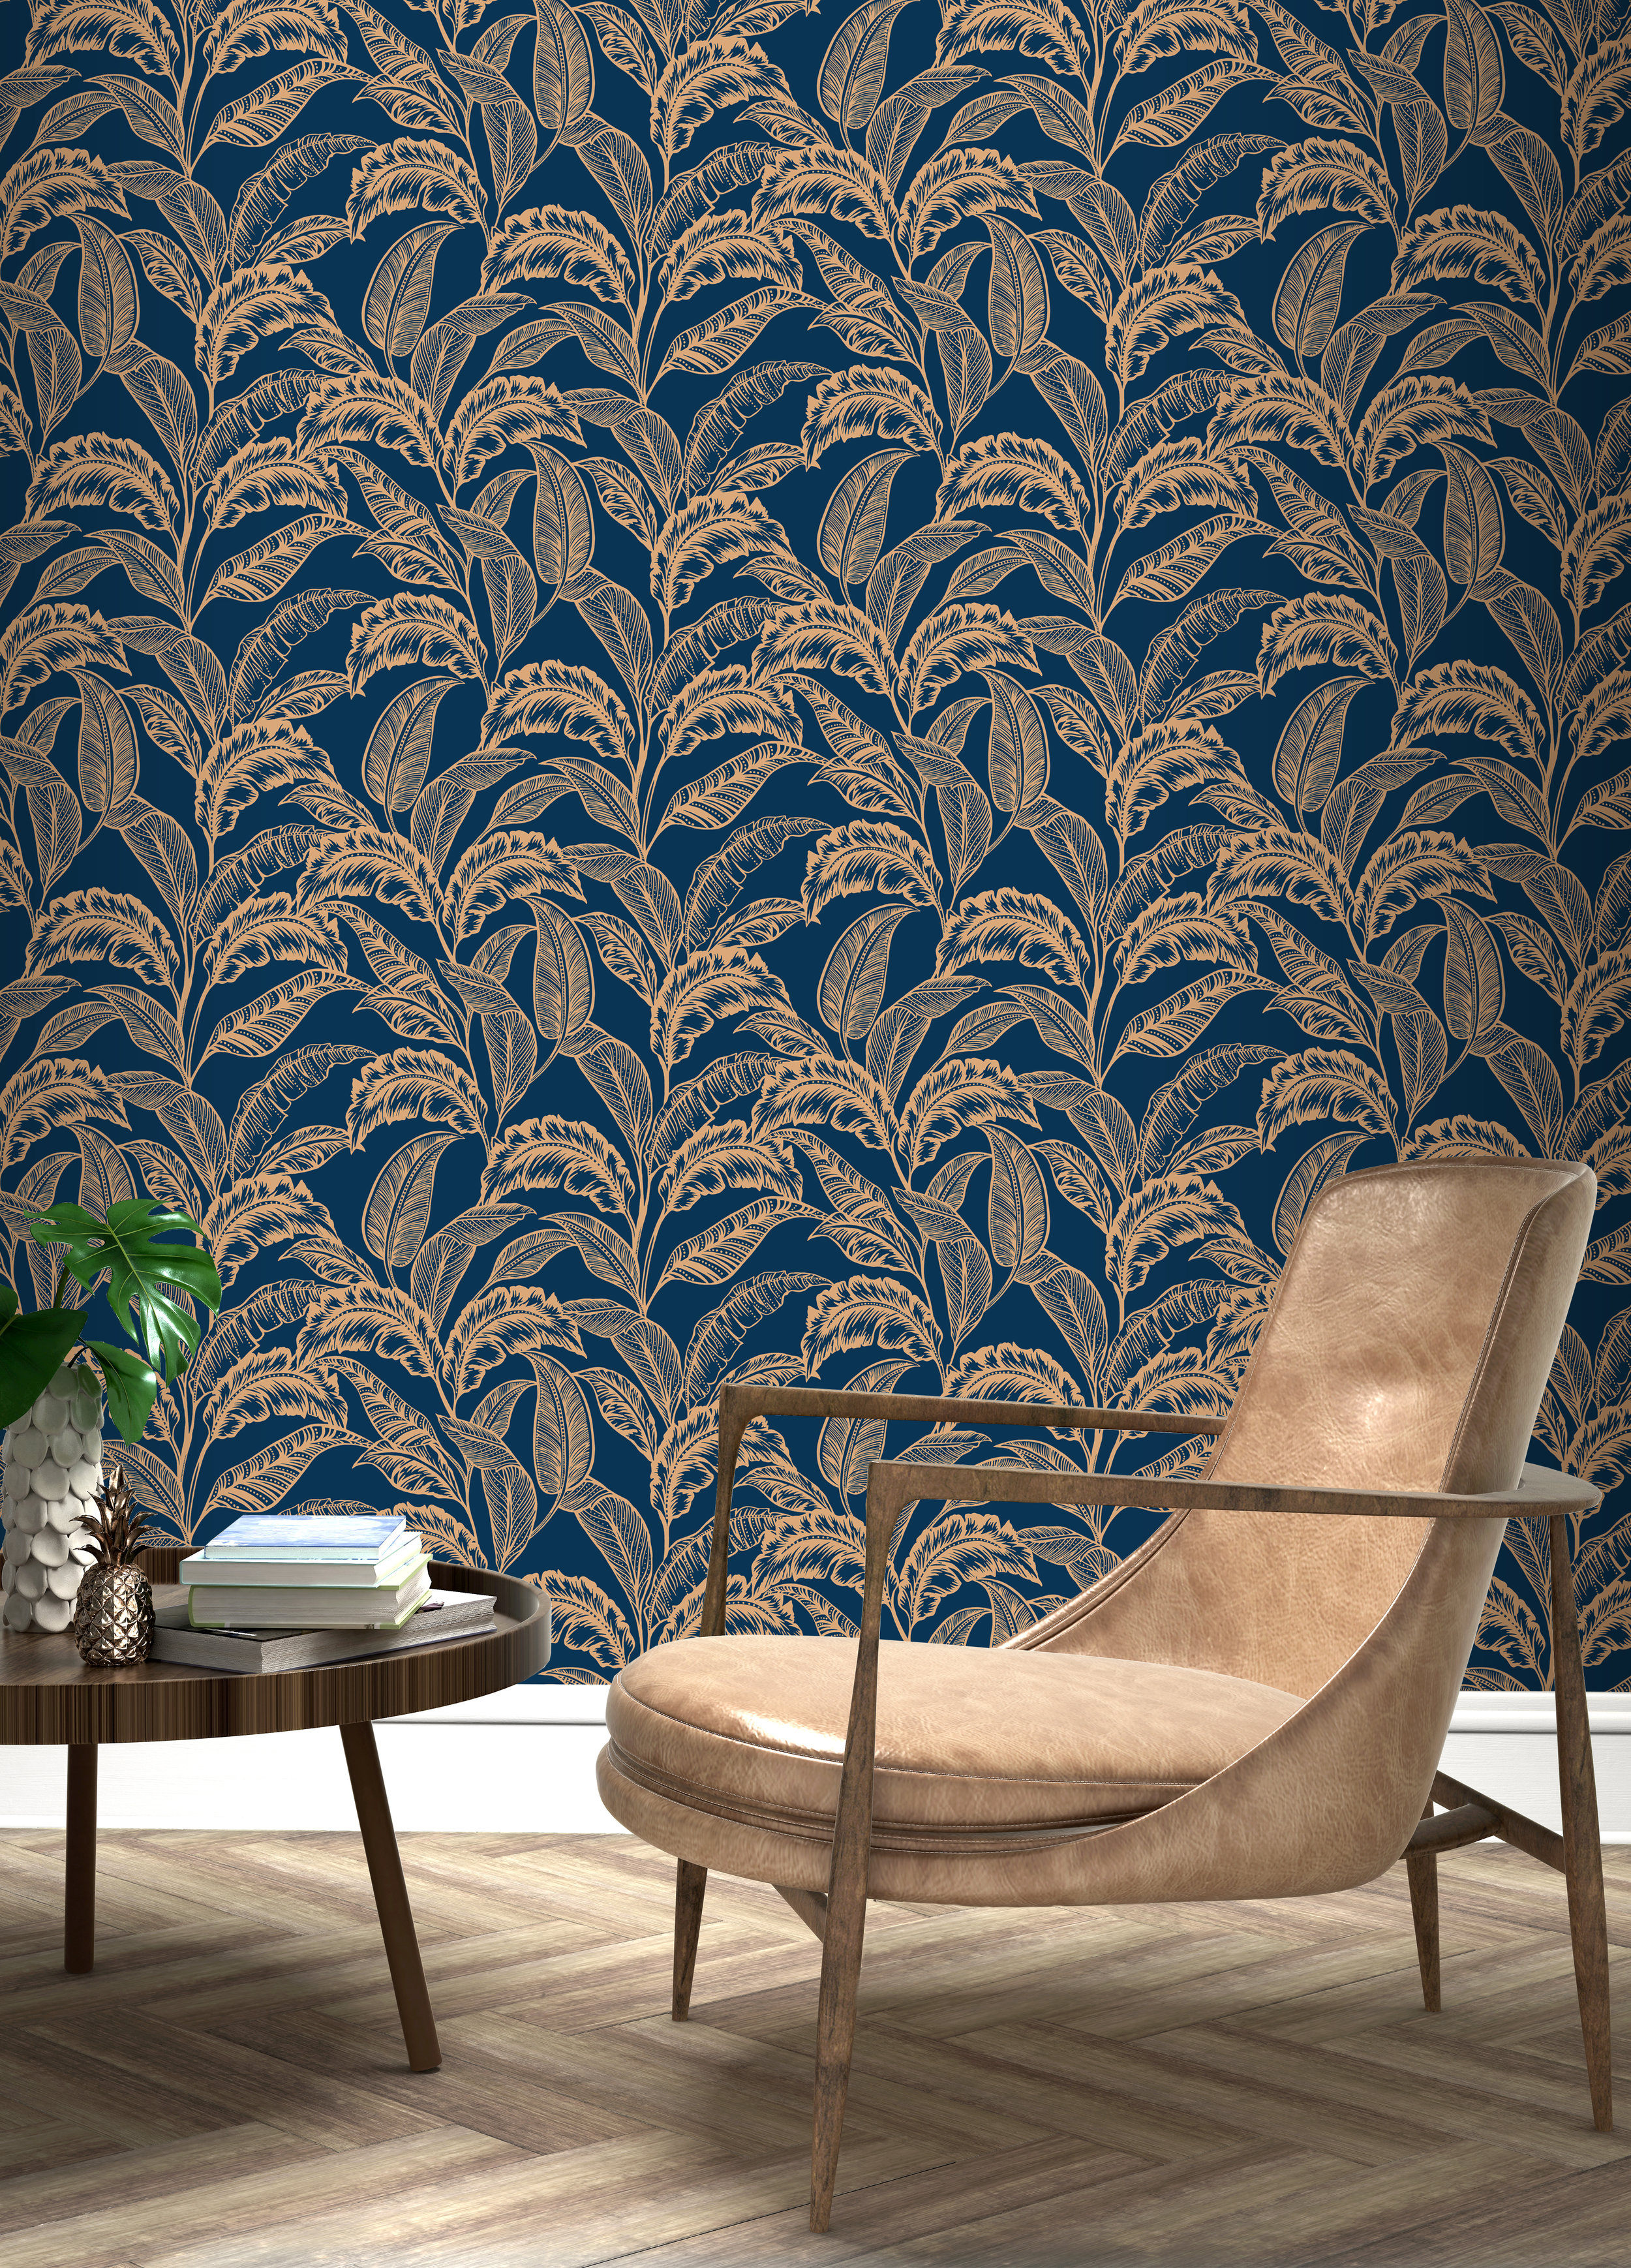 Accessorize Mozambique Wallpaper - Blue Rose Gold copy.jpg